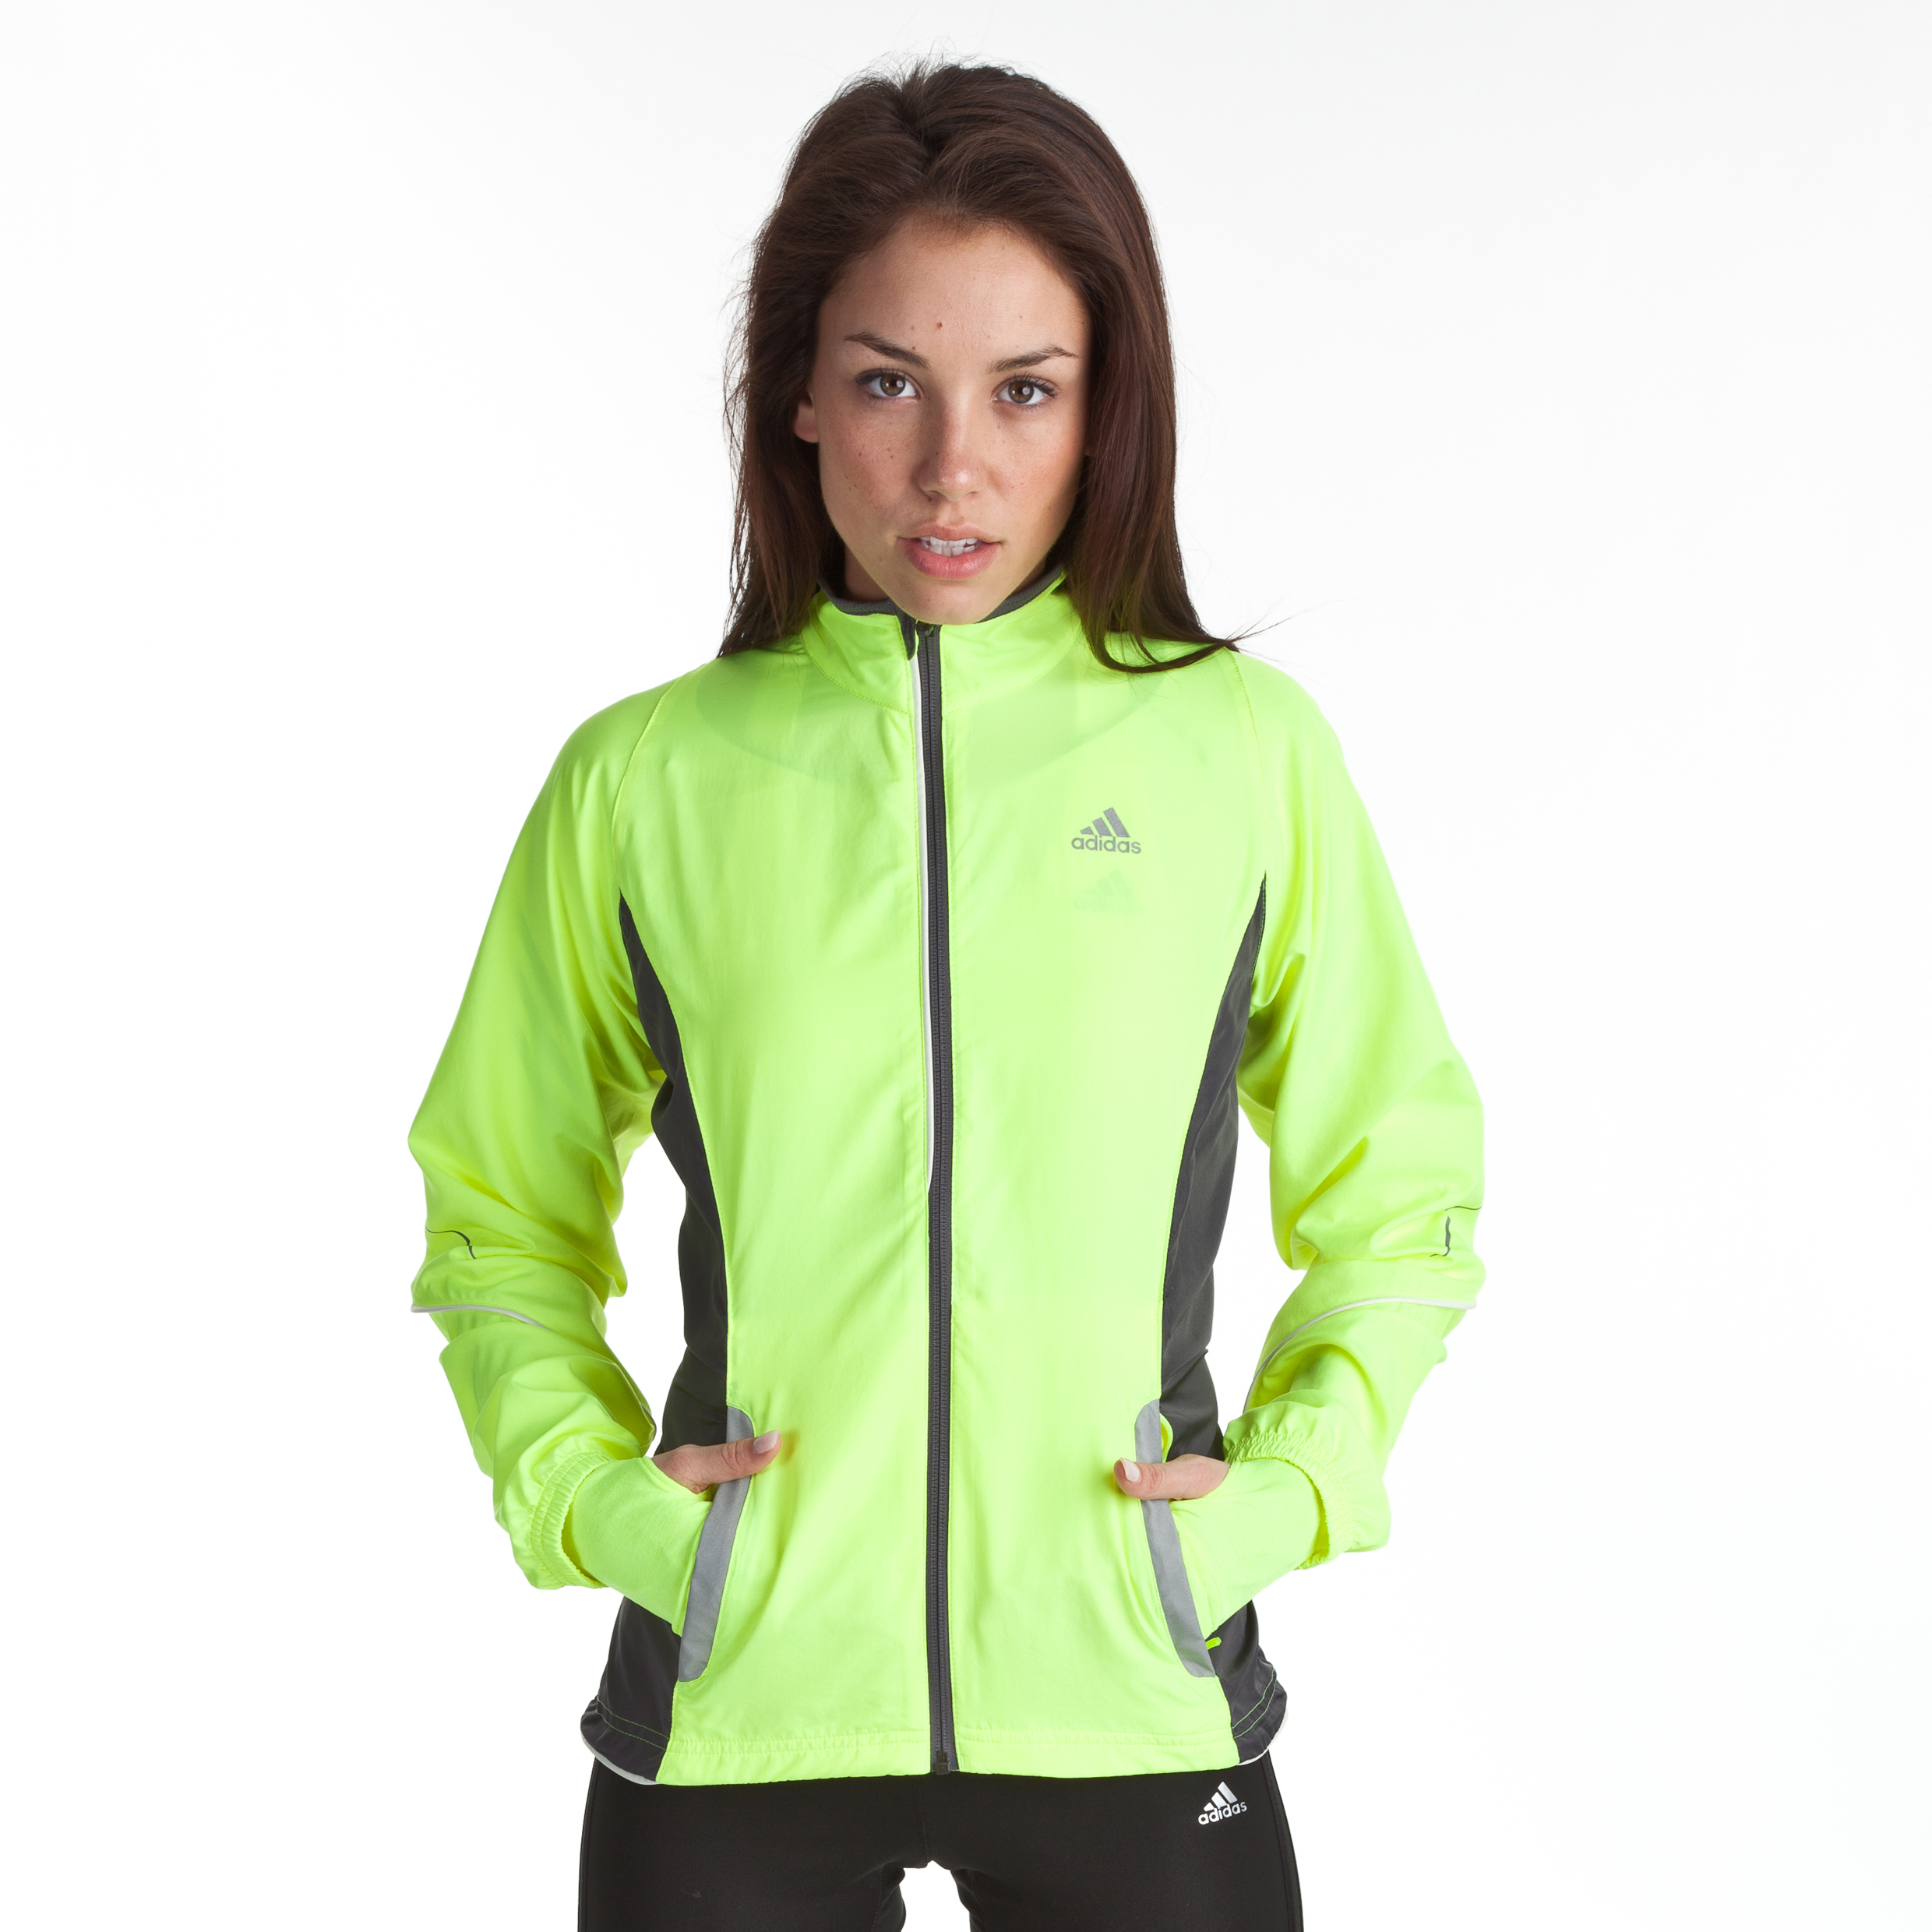 Adidas Supernova High Viz Jacket - Womens